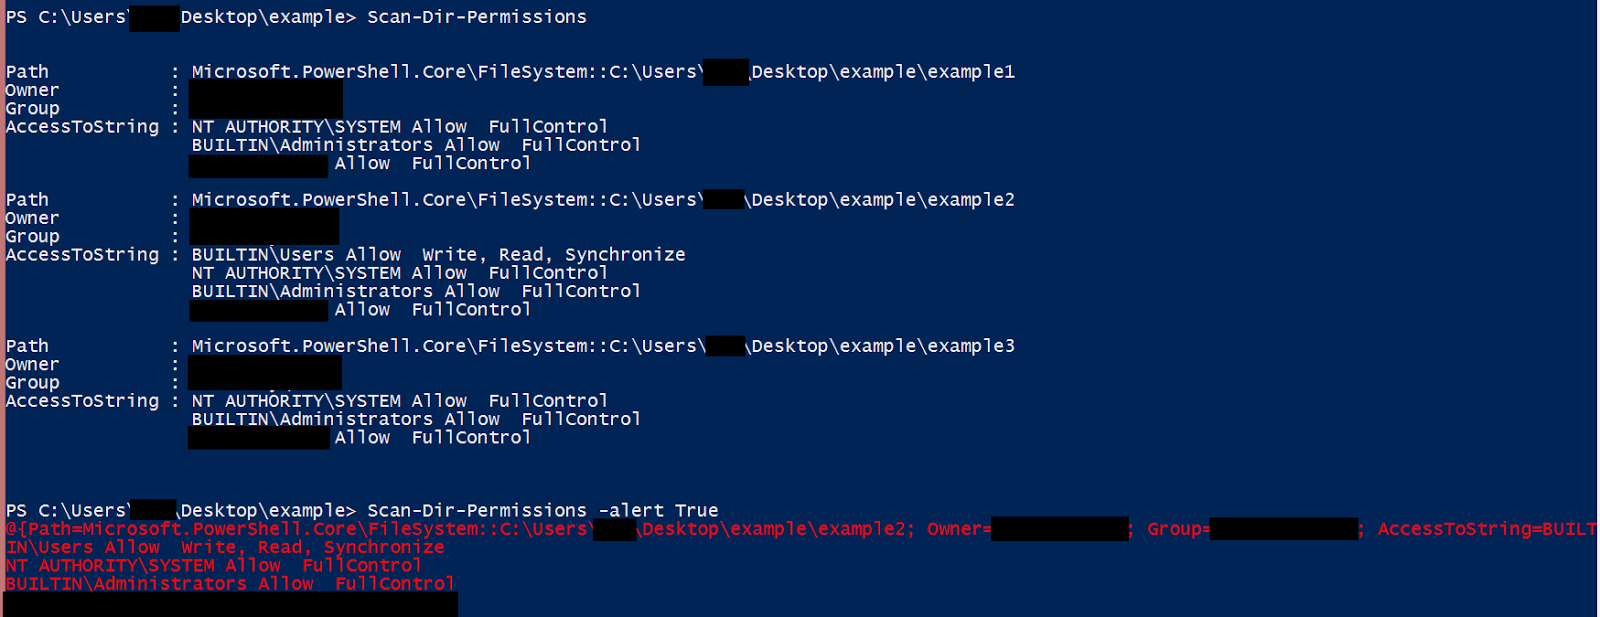 Scan Dir Permissions Powershell For Pentesters Psse Lockboxx